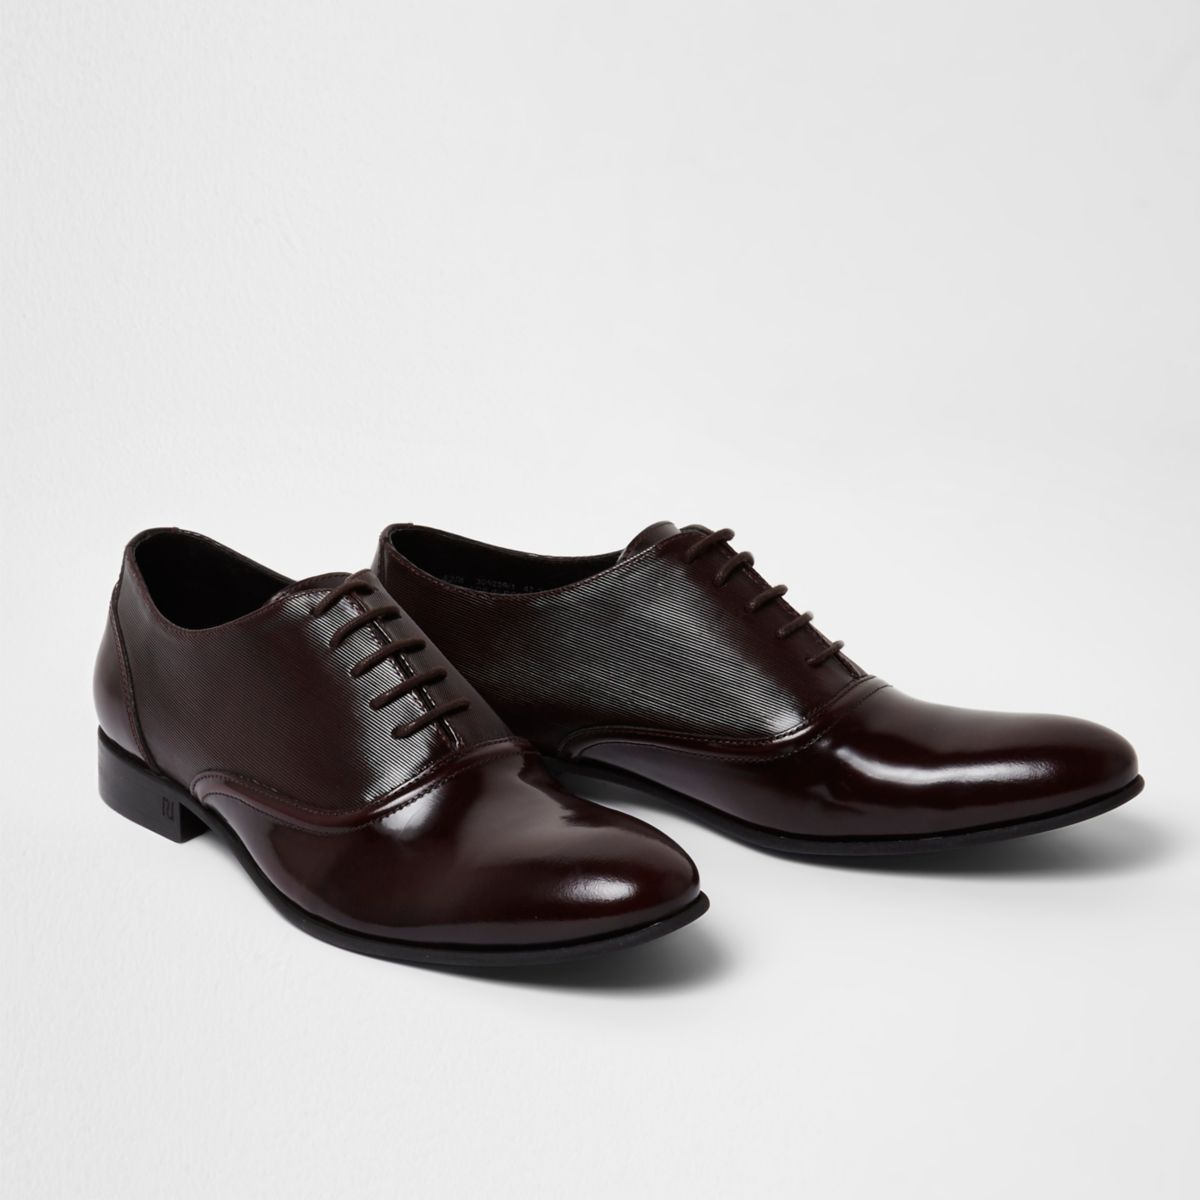 Dark red polished leather oxford shoes